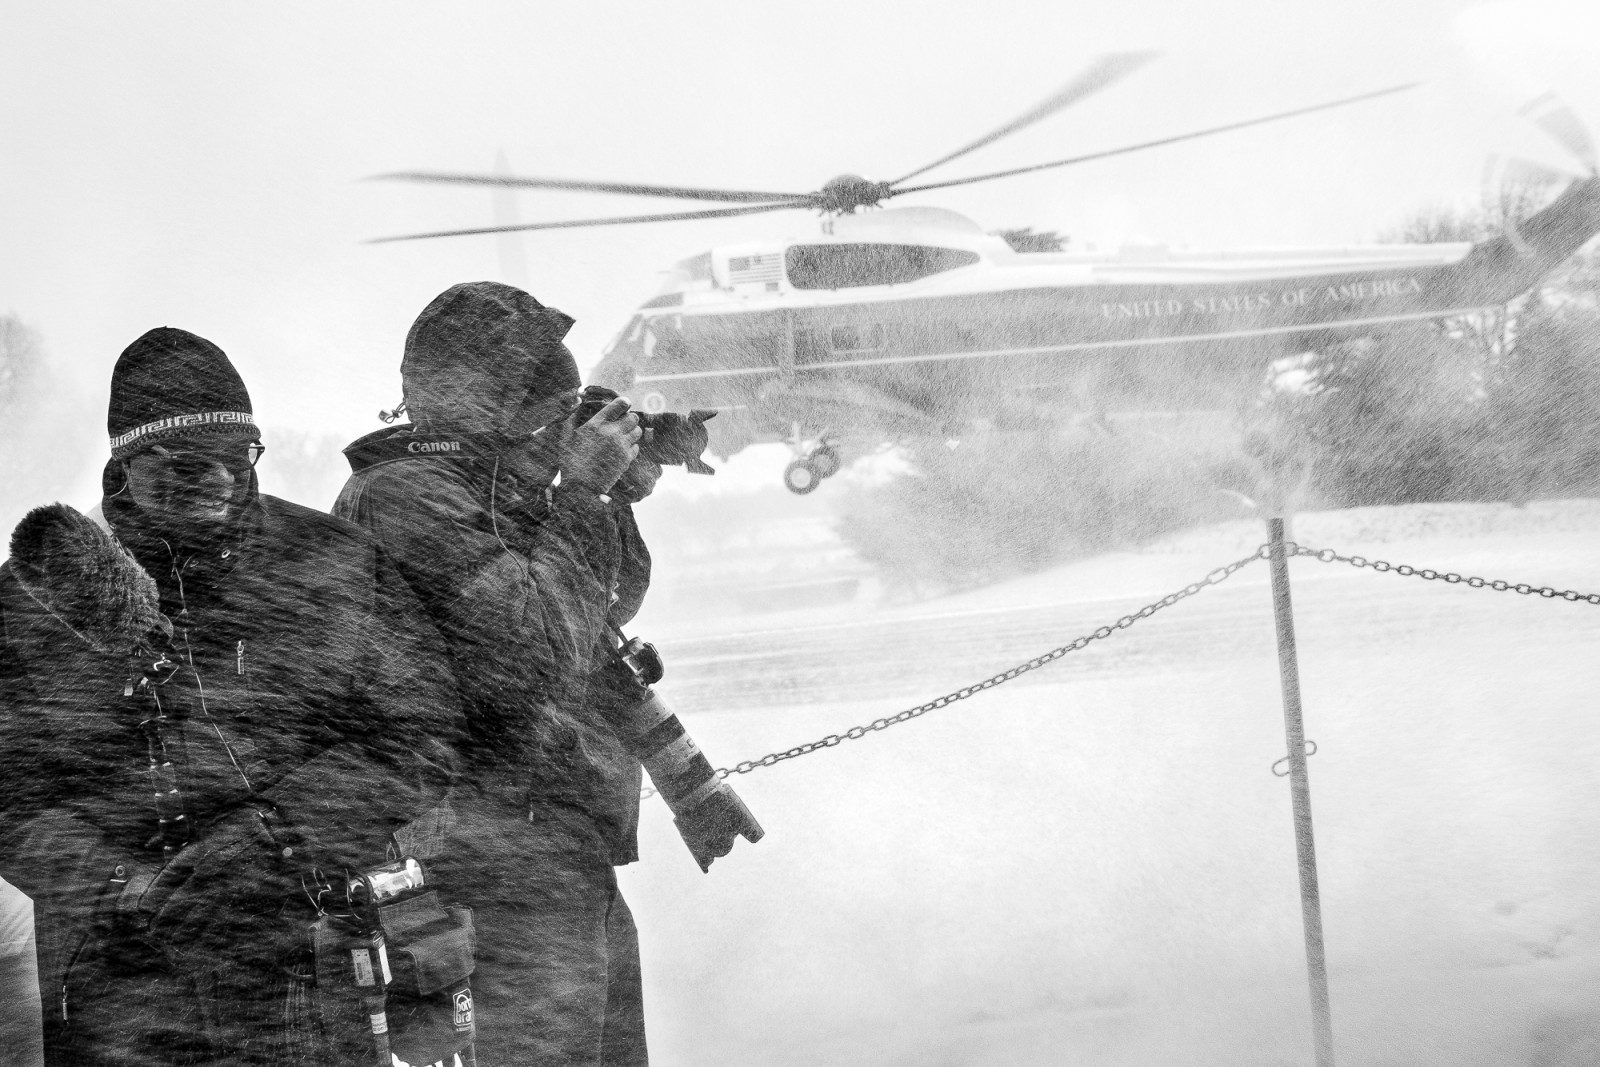 Members of the media turn away from the blowing snow as Marine One comes in for a landing on the snow covered South Lawn of the White House in Washington, District of Columbia, U.S., on Wednesday, Jan. 7, 2015.  President Obama is traveling to the Ford Michigan Assembly Plant in Wayne, Michigan to deliver remarks highlighting the workers in the resurgent American automotive and manufacturing sector now that the auto rescue has been completed and the decision to save the auto industry and the over one million jobs that went with it. Photographer: Pete Marovich/Bloomberg/POOL